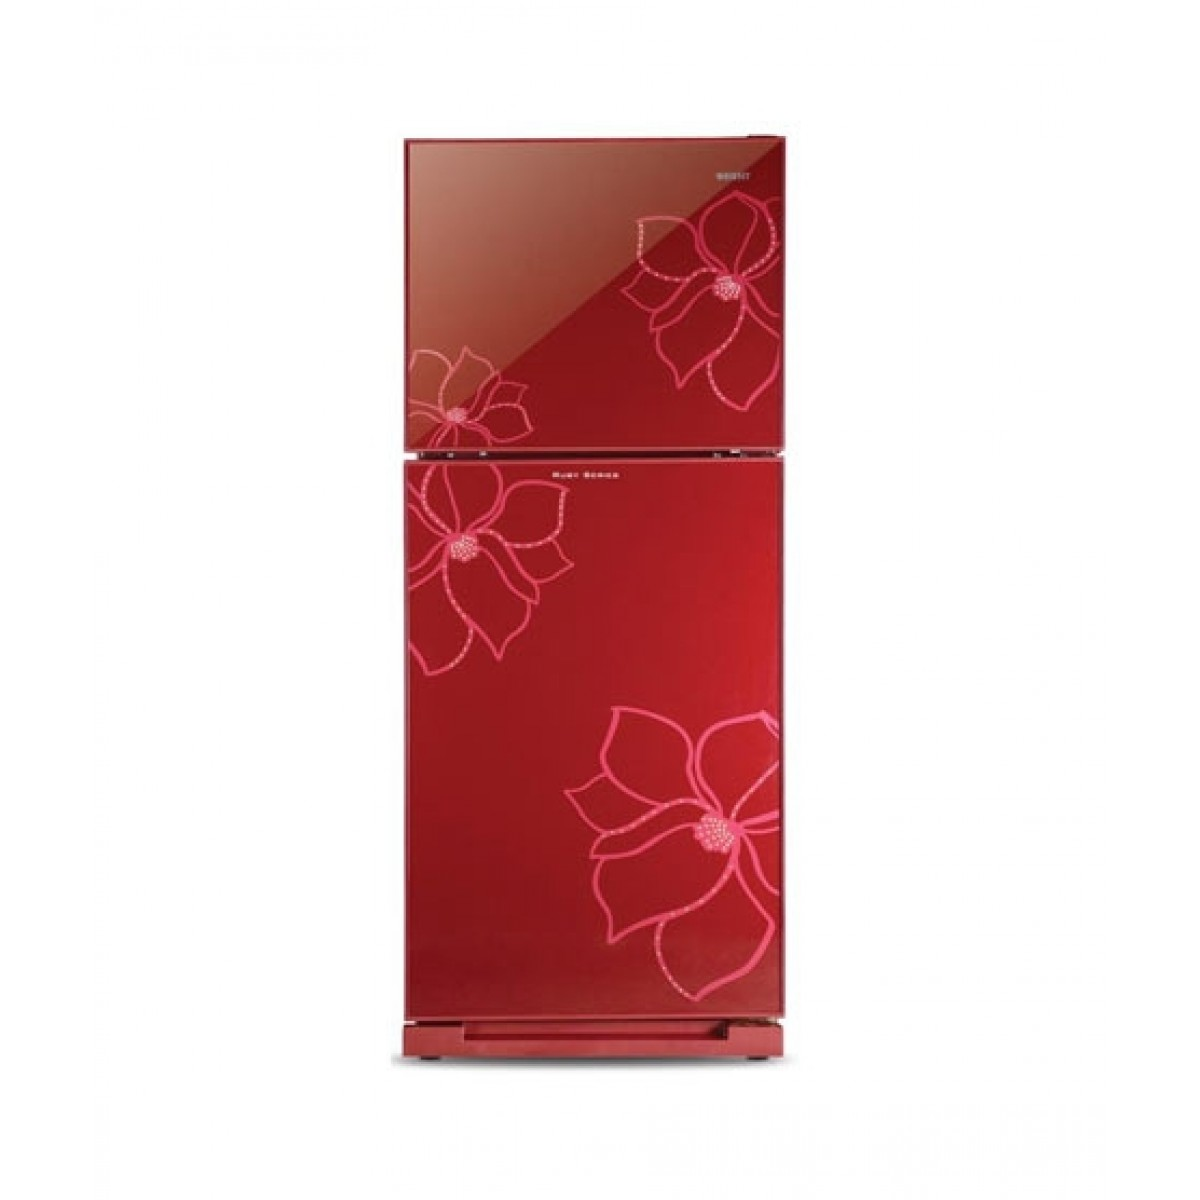 Orient Diamond 540 Freezer-on-Top Refrigerator 19 Cu Ft Red (68750-ZB)